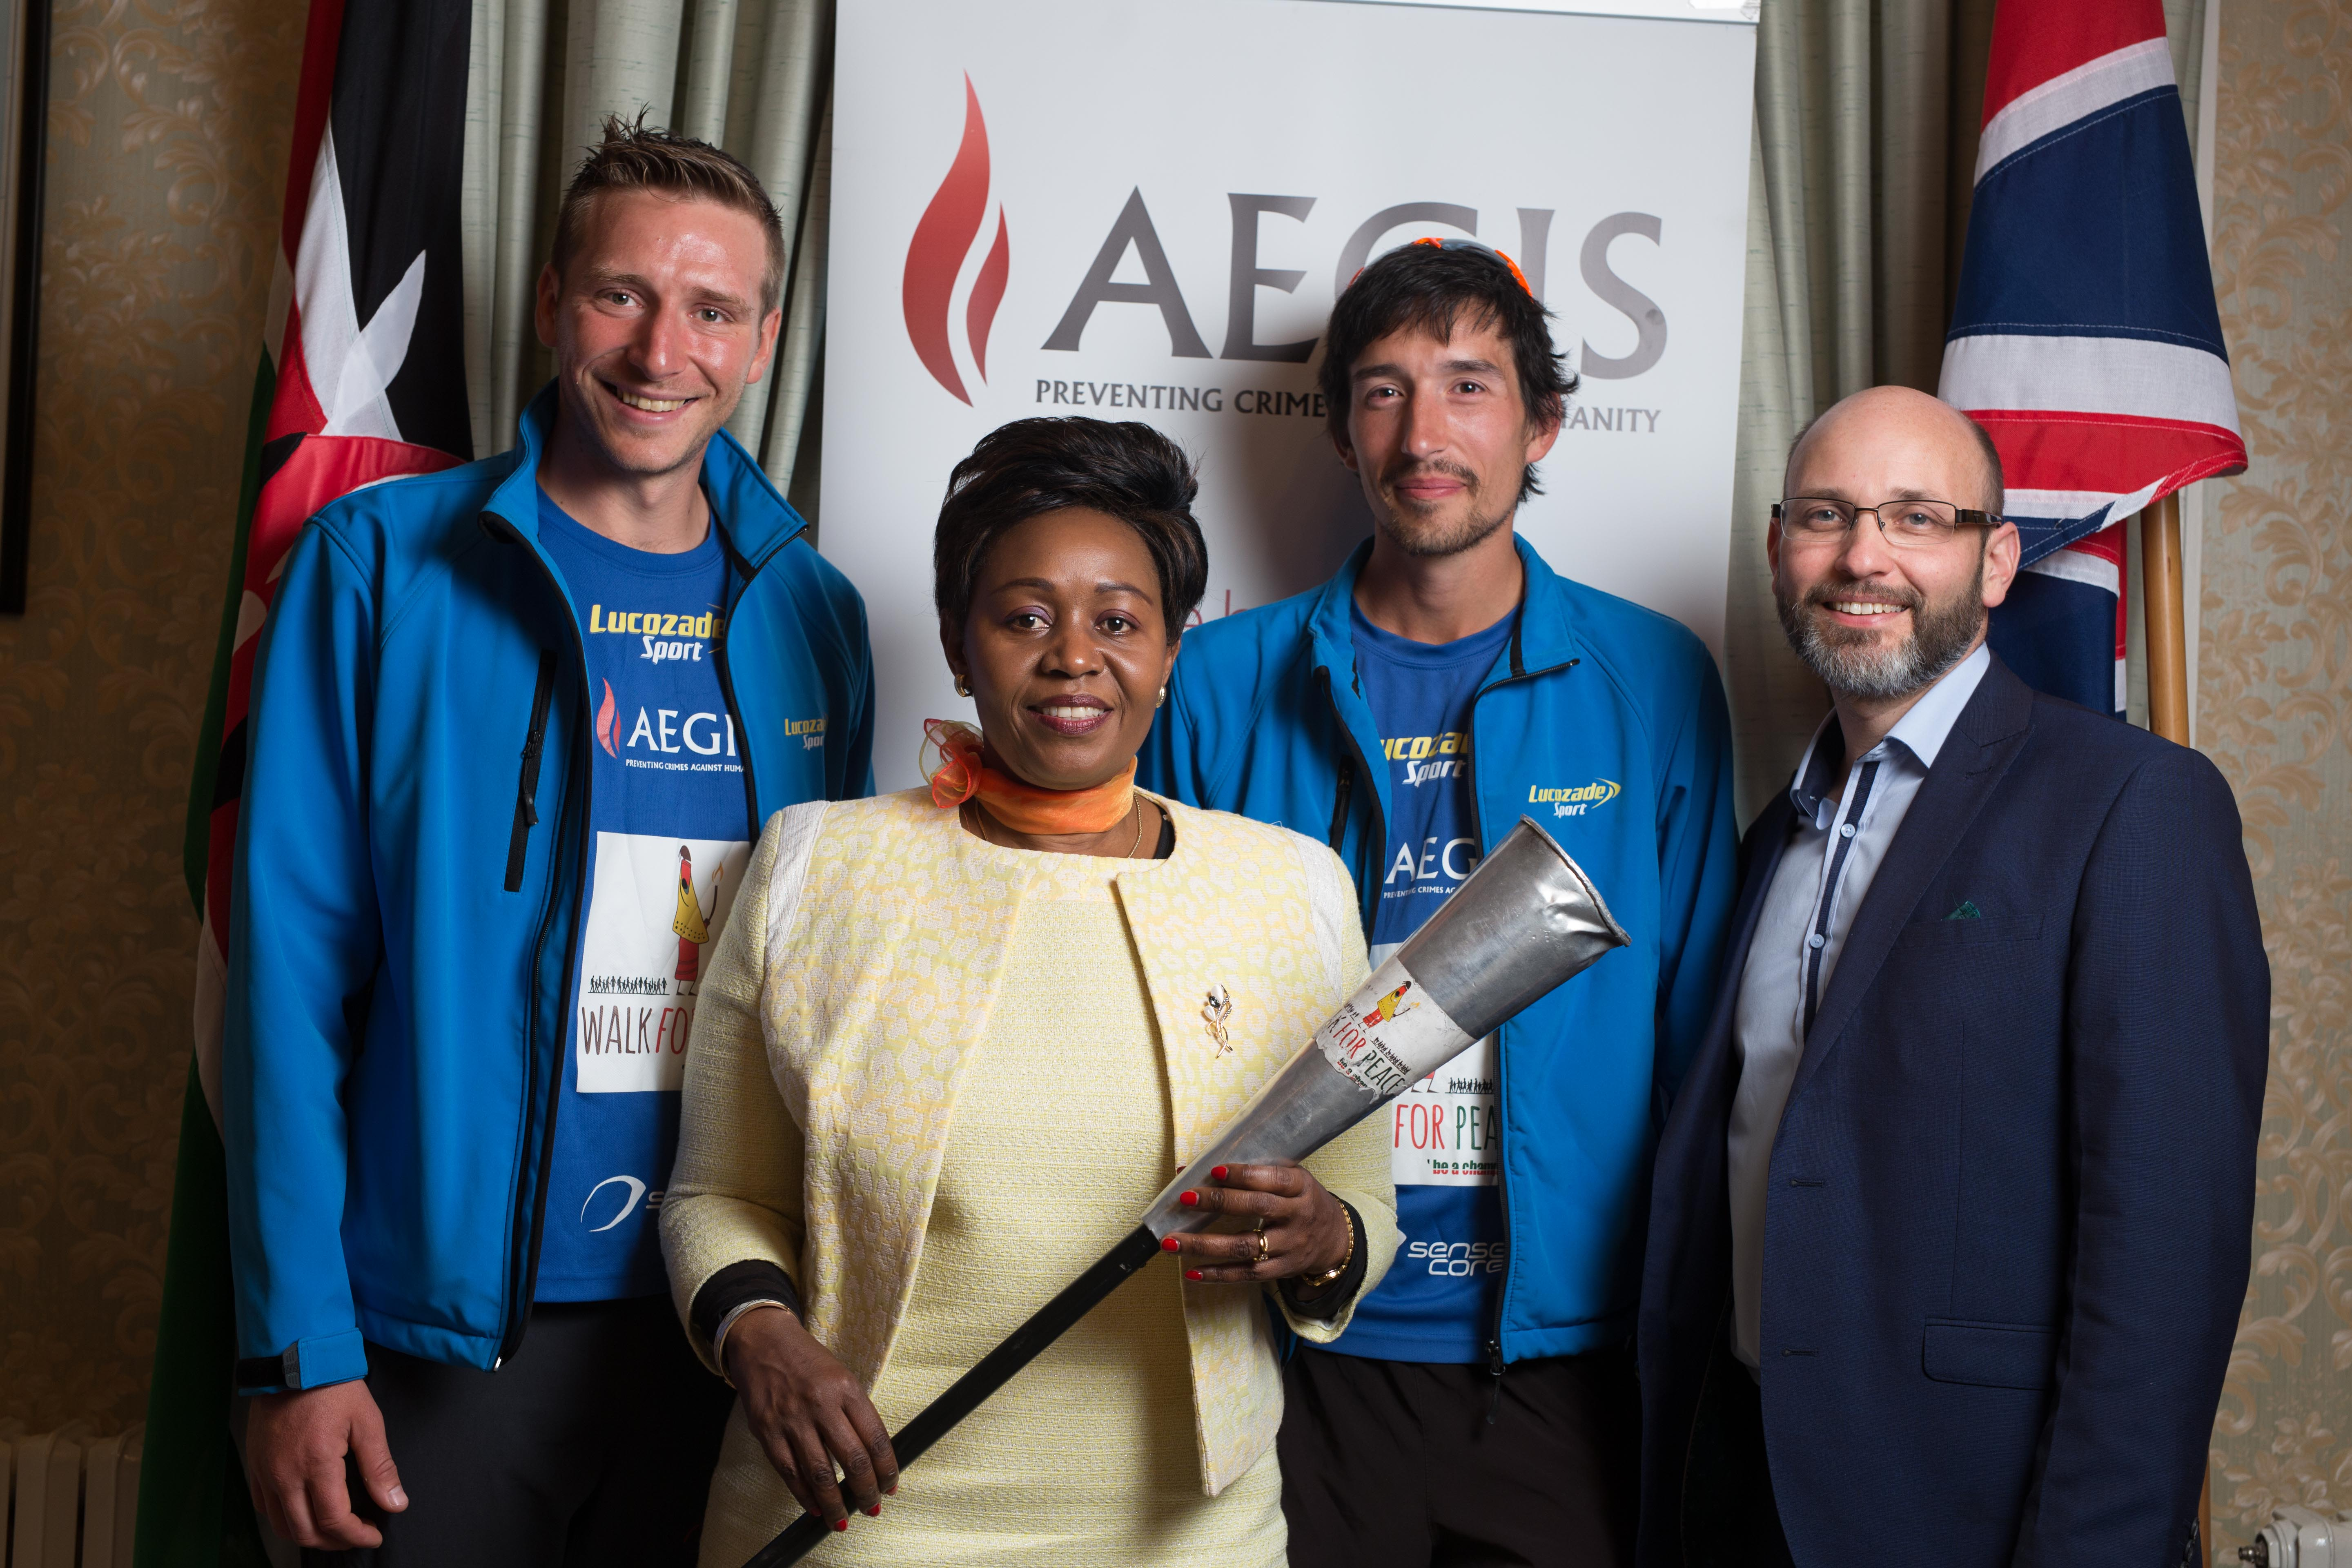 L-R: Rob Young (Marathon Man UK), Ambassador Jackline Yonga, Adam 'Tango' Holland, and Dr James Smith, CEO of the Aegis Trust, at Kenya's High Commission in London as Young and Holland present the Ambassador with the Torch for Humanity at the conclusion of their 2200-mile relay for the Champions Walk for Peace (www.walkforpeace.co.ke)